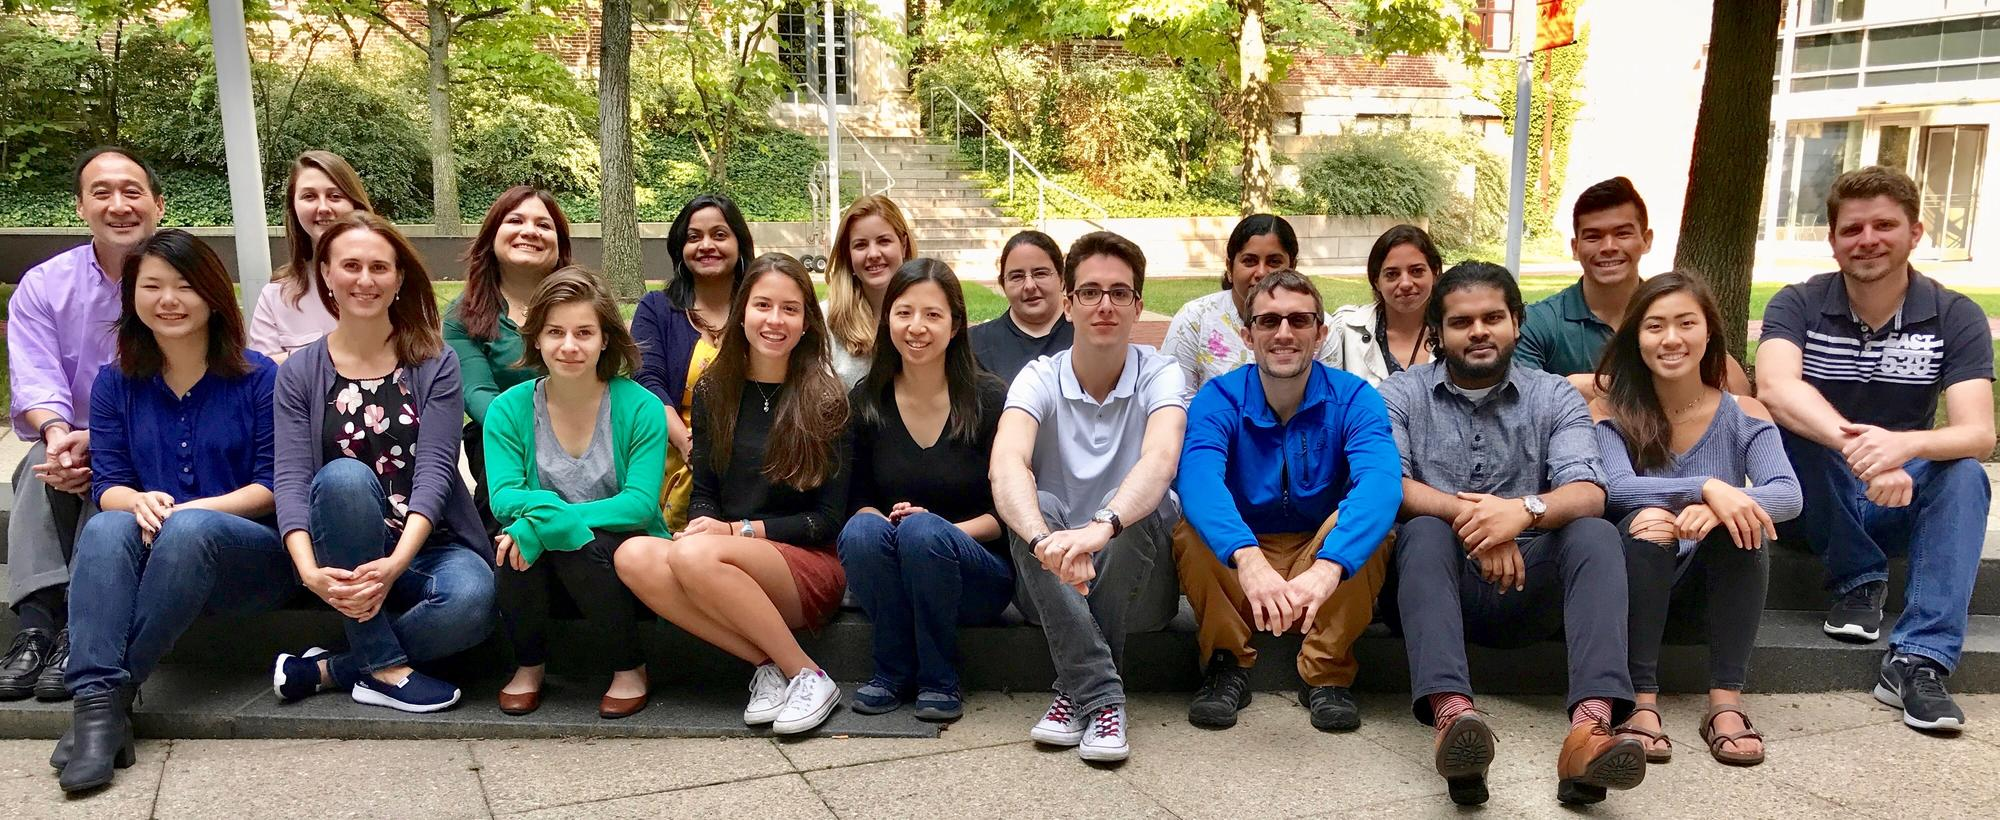 Lee lab group photo